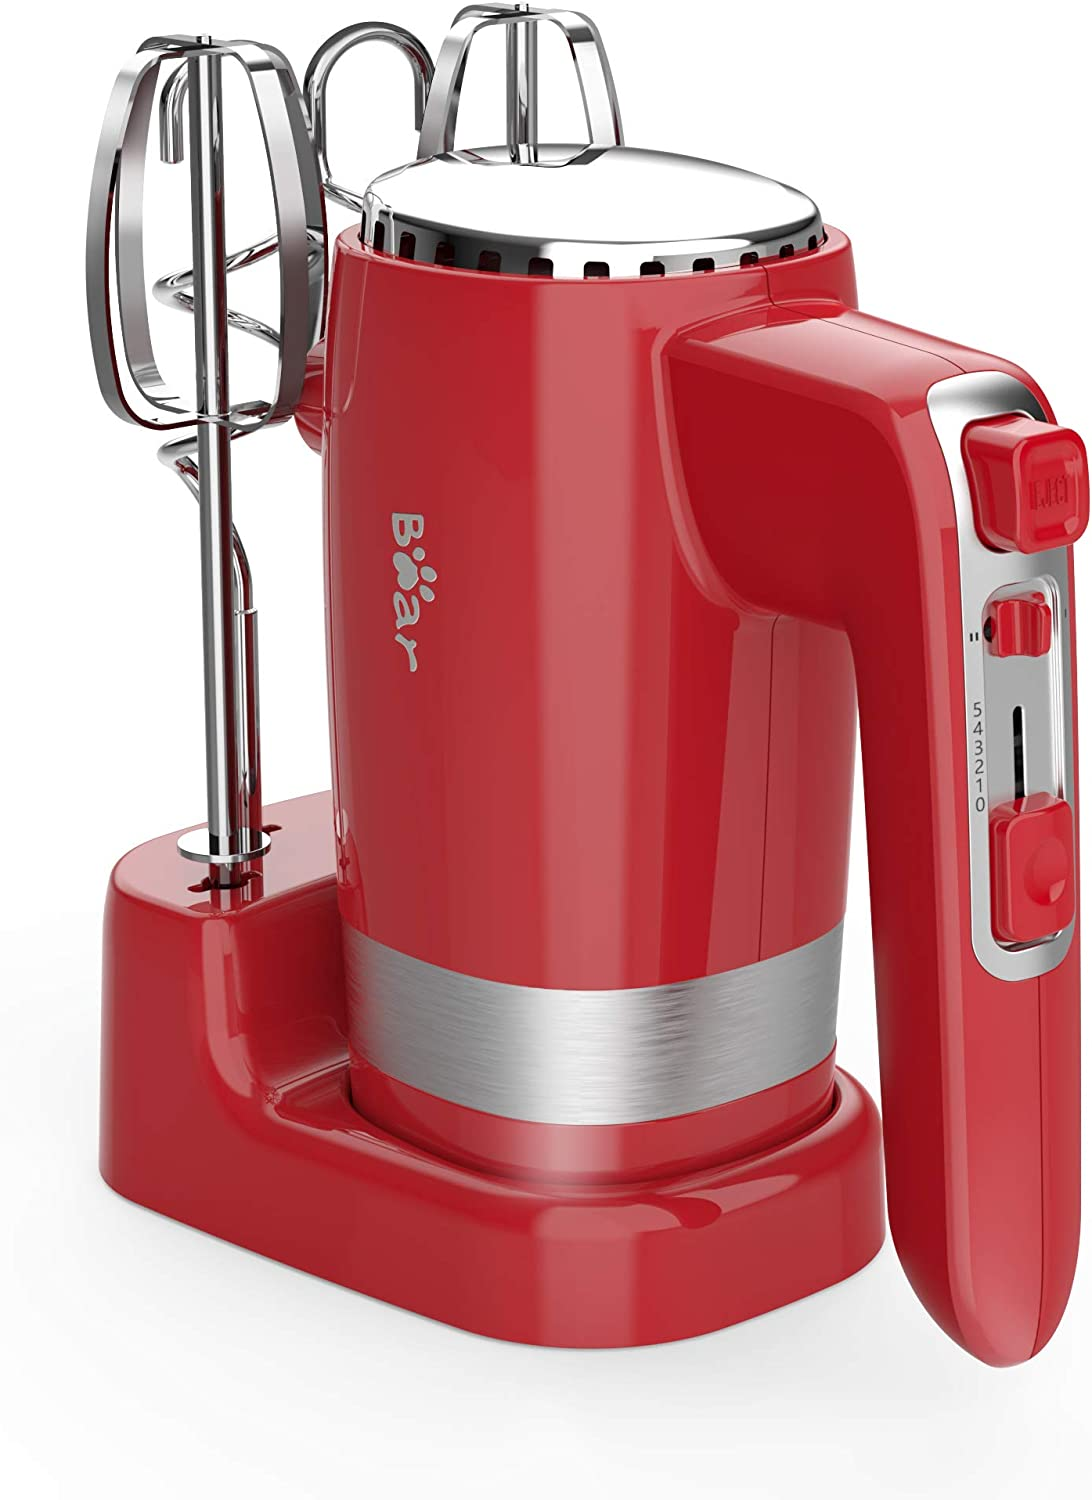 Hand Mixer Electric 300w Ultra Power Kitchen Hand Mixer With 2 *5-Speed Handheld Mixer with Storage Base ,Turbo Boost/Self-Control Speed Eject Button + 4 Stainless Steel Accessories